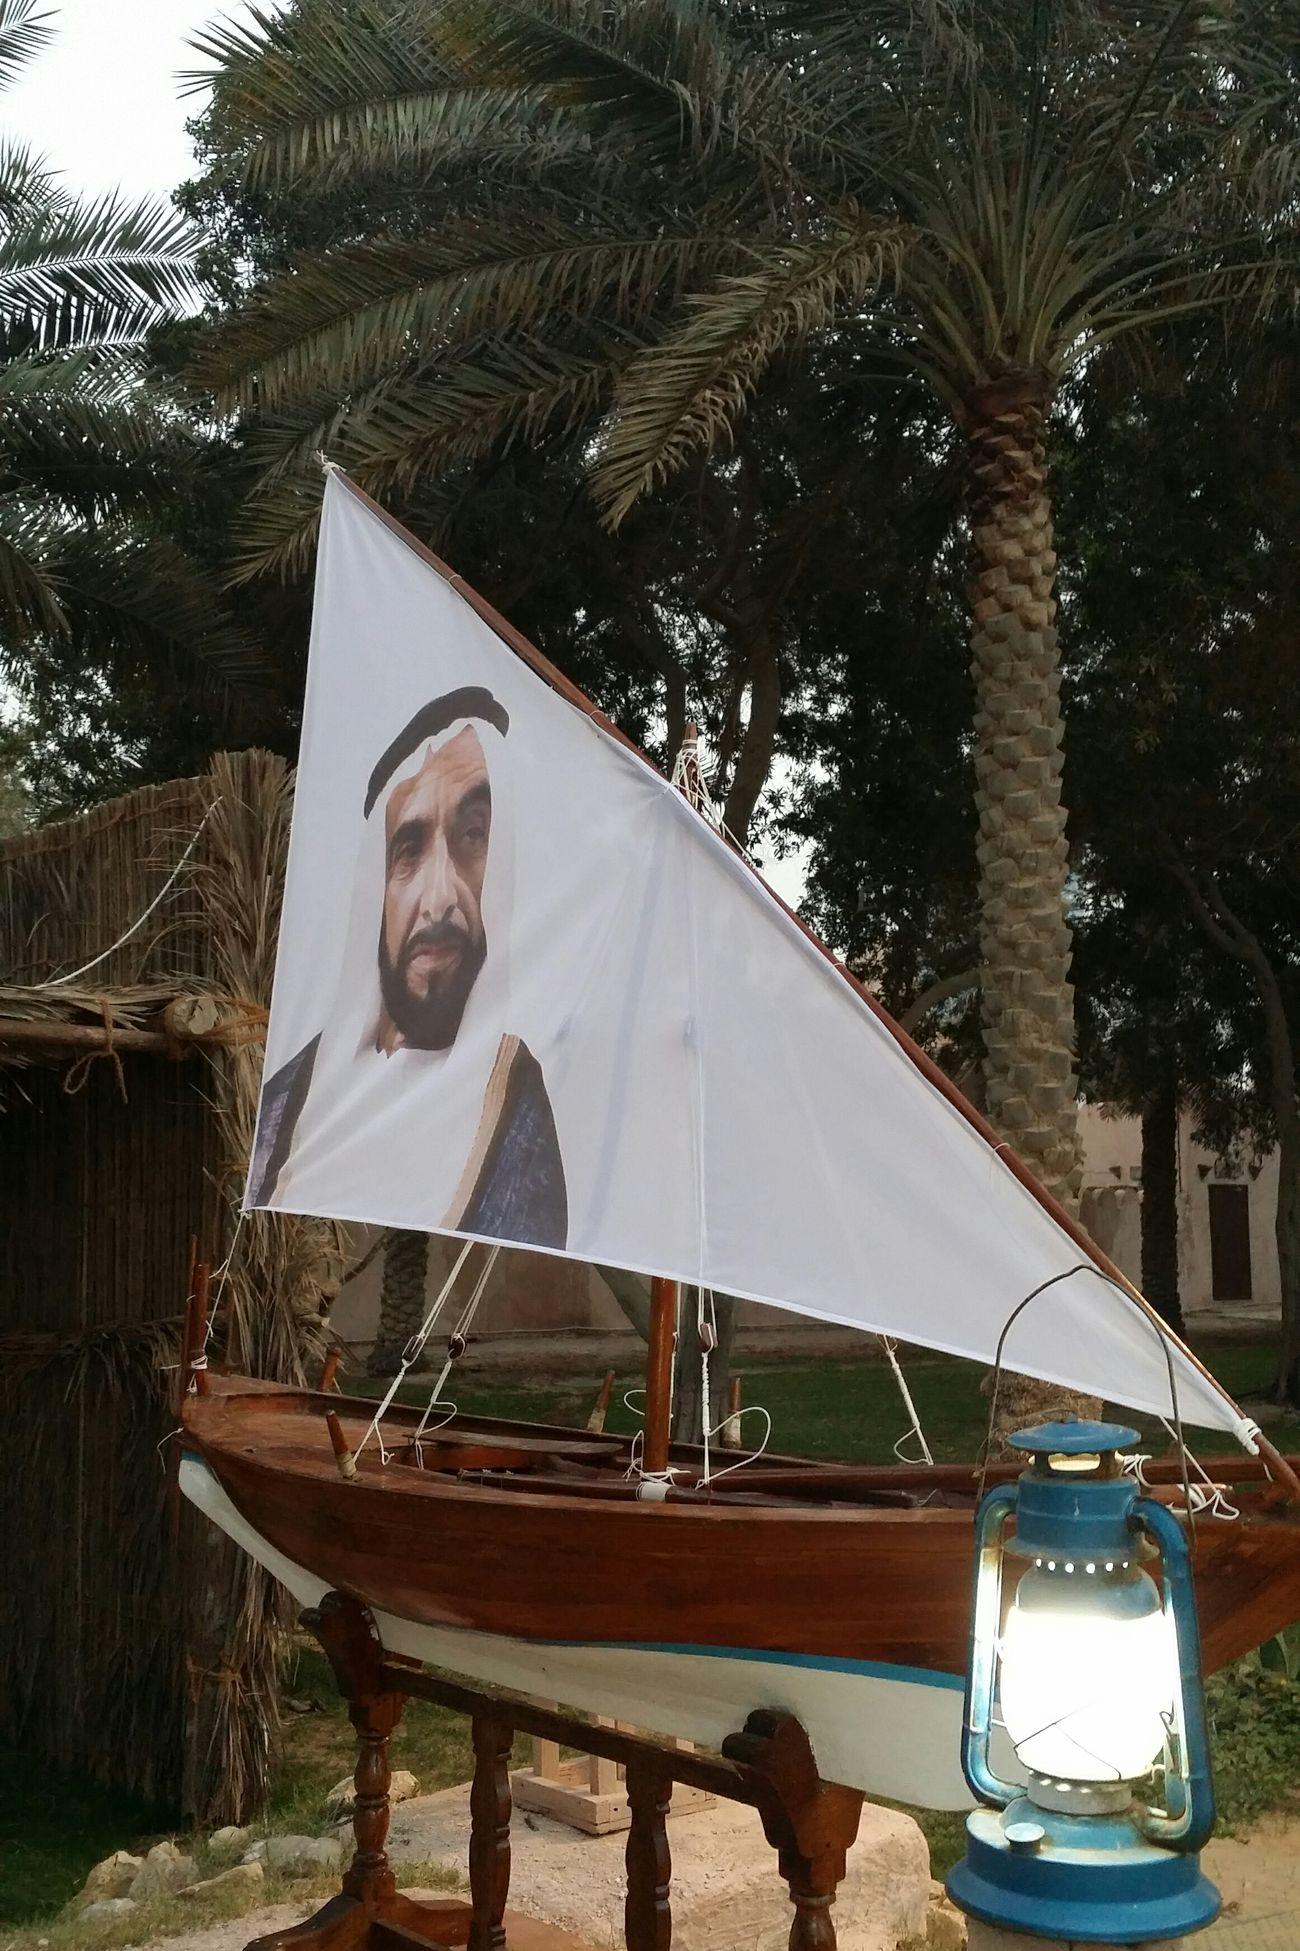 Uae,abudhabi former President and Founder of UAE late Sheikh_Zayed may Allah bless his soul